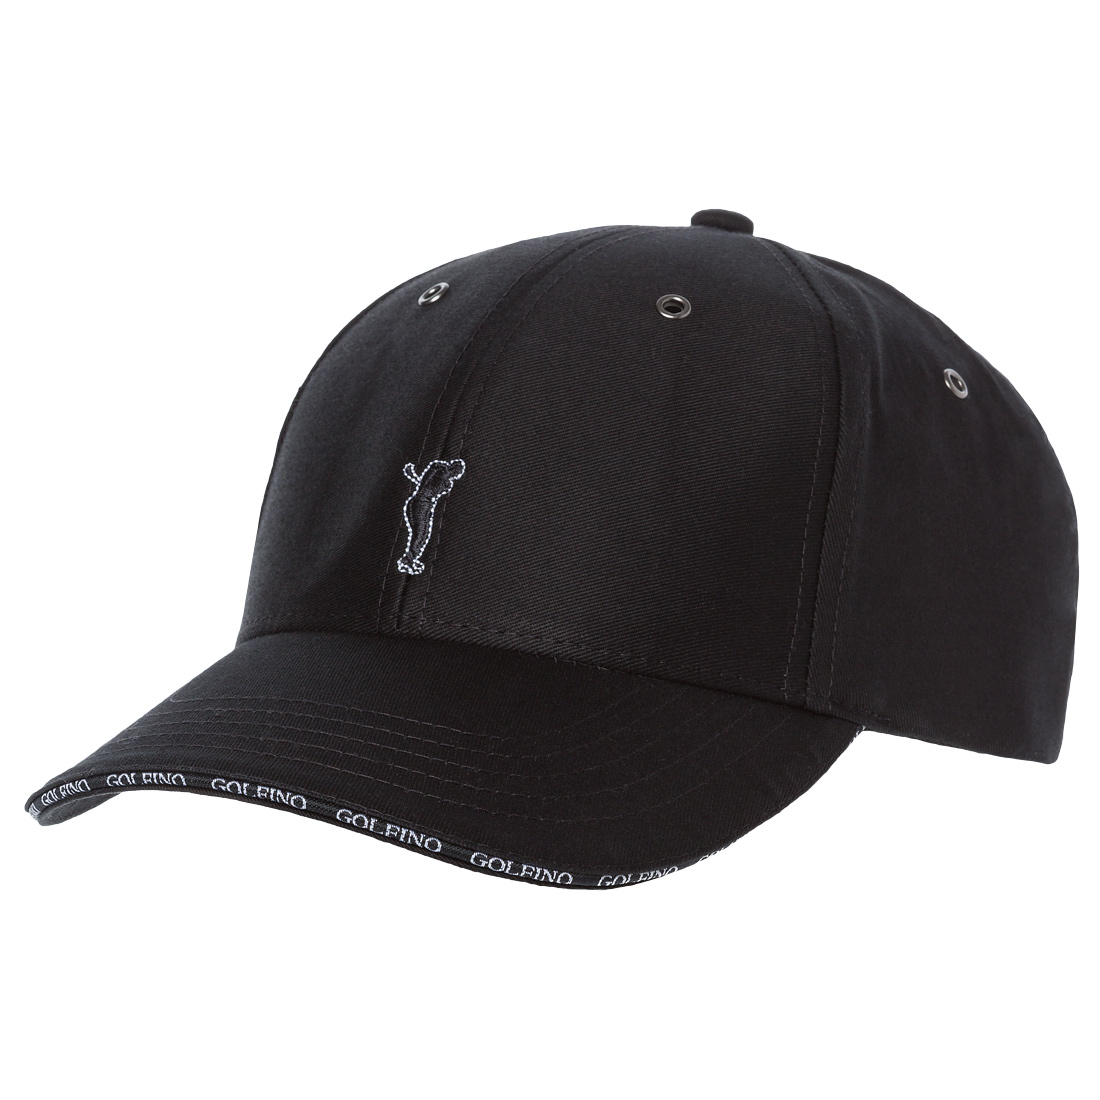 Men's cotton golf cap (one size)